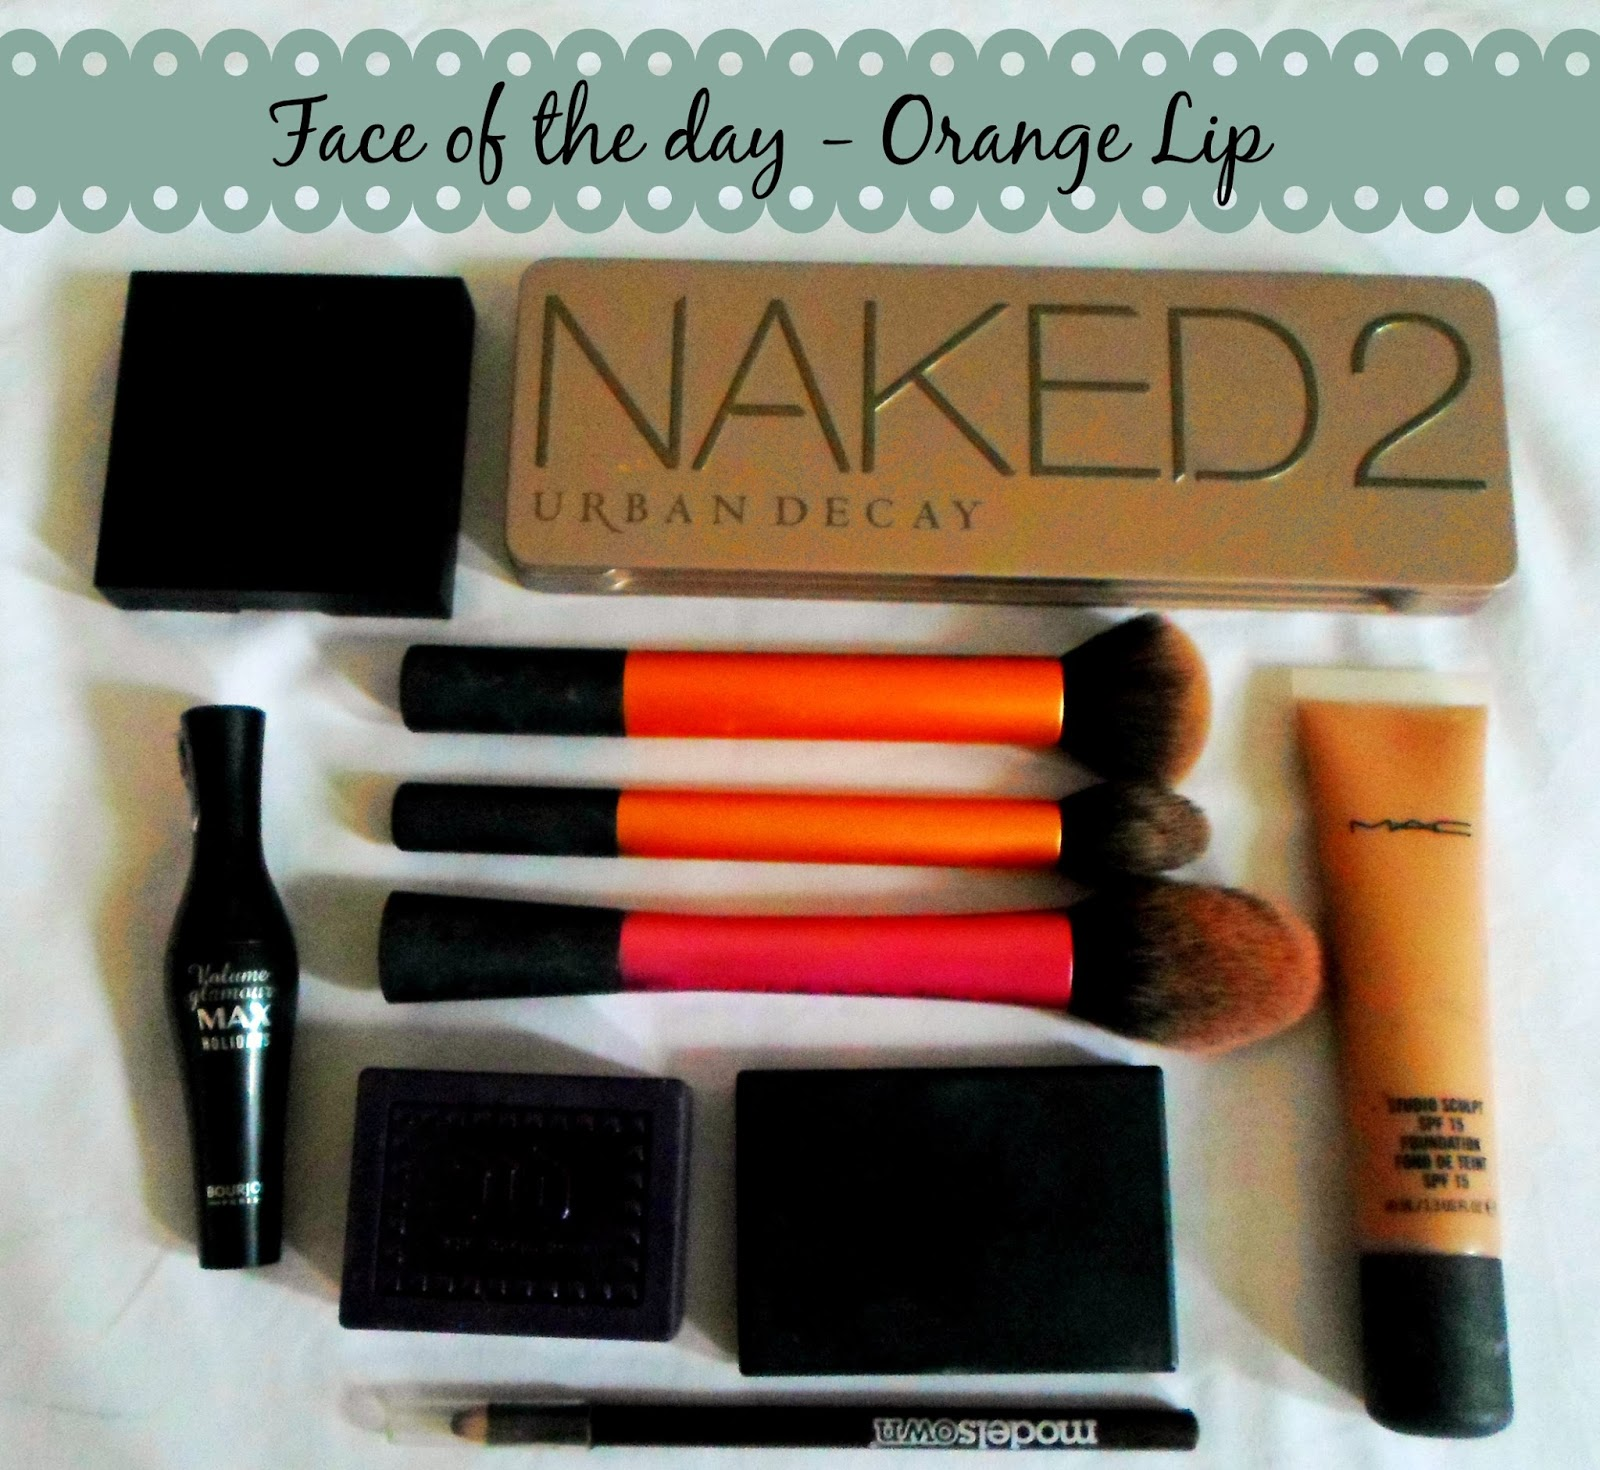 Face of the day - orange lip